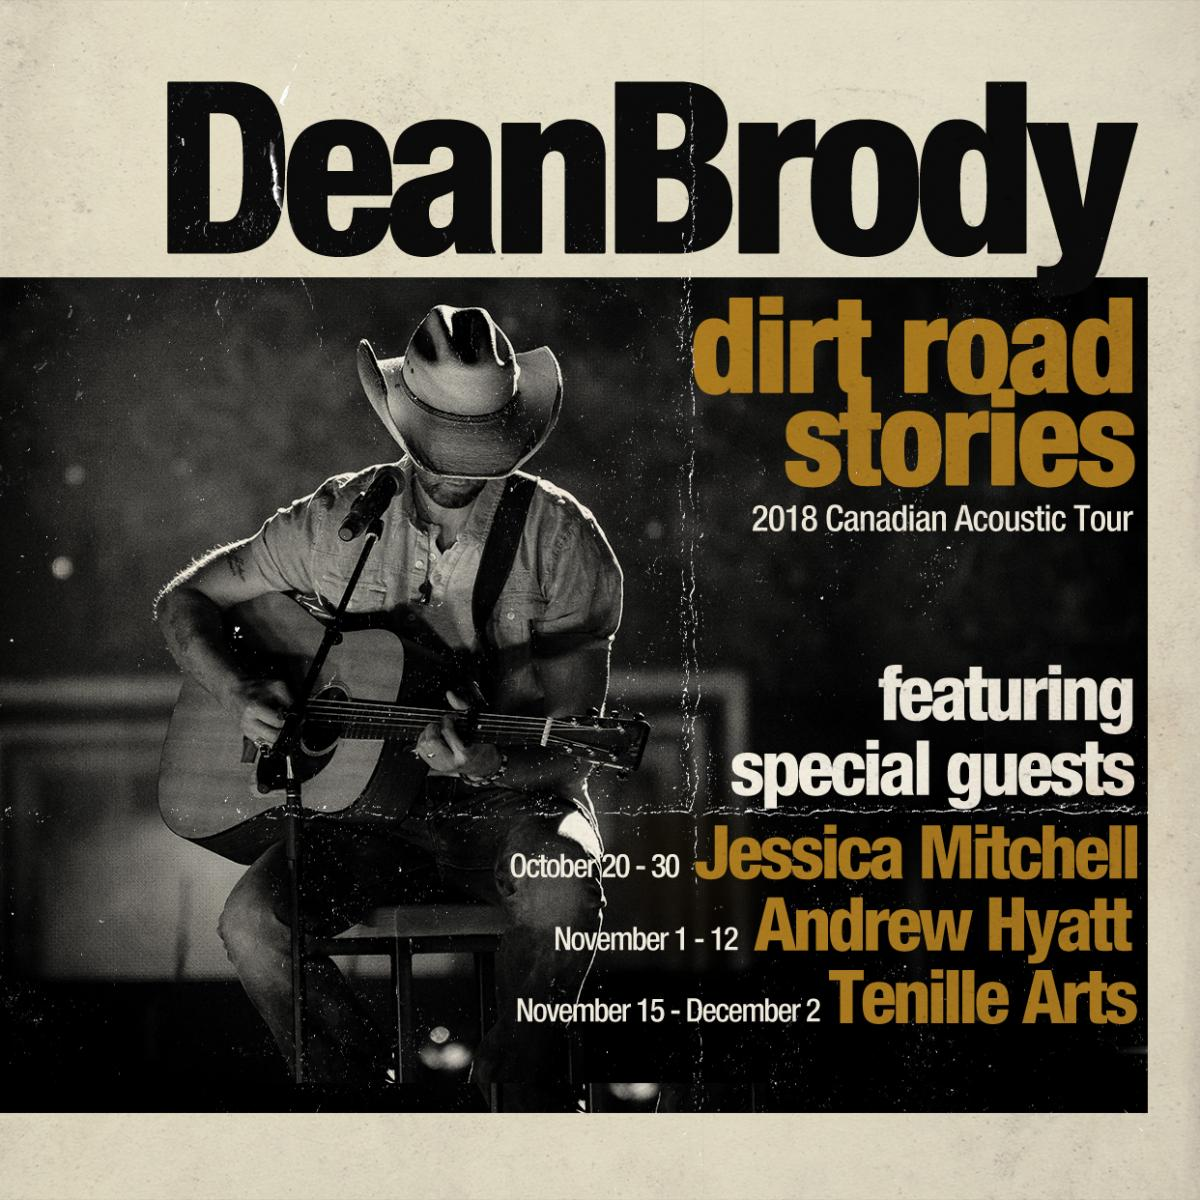 Dean Brody Heads out on the Dirt Road Stories Tour